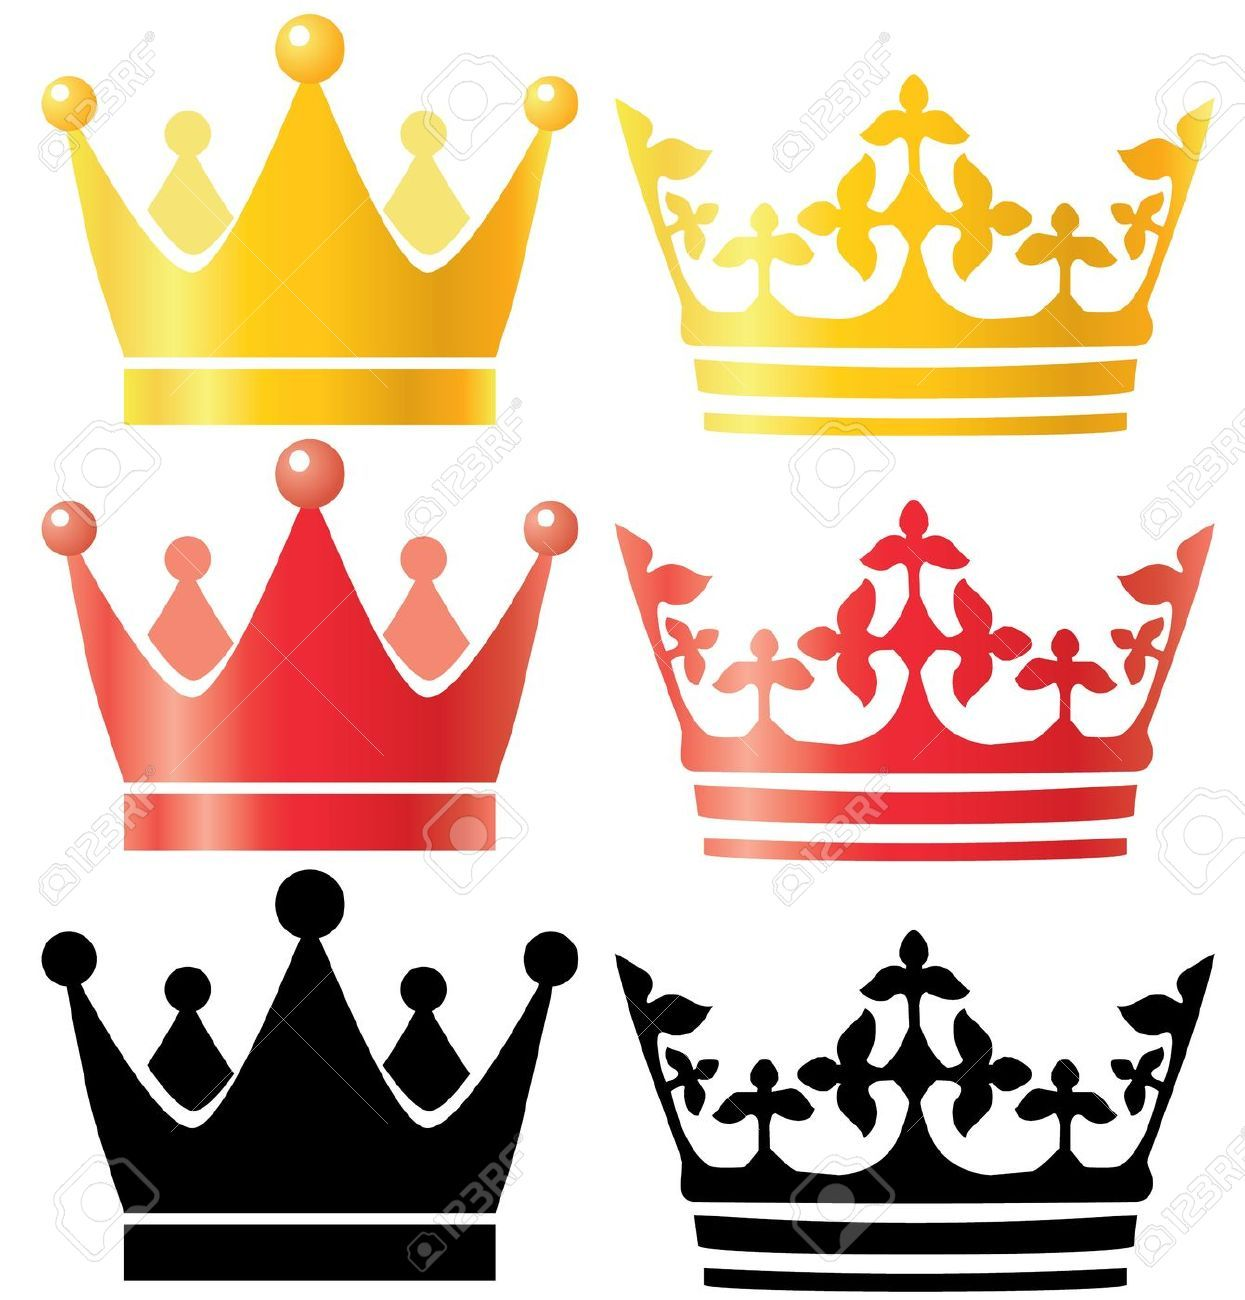 crown king Welcome friends in the lord  shine in the love of god's grace every day at the chapel of the crowned king & christian renewal center, it is our mission to help.